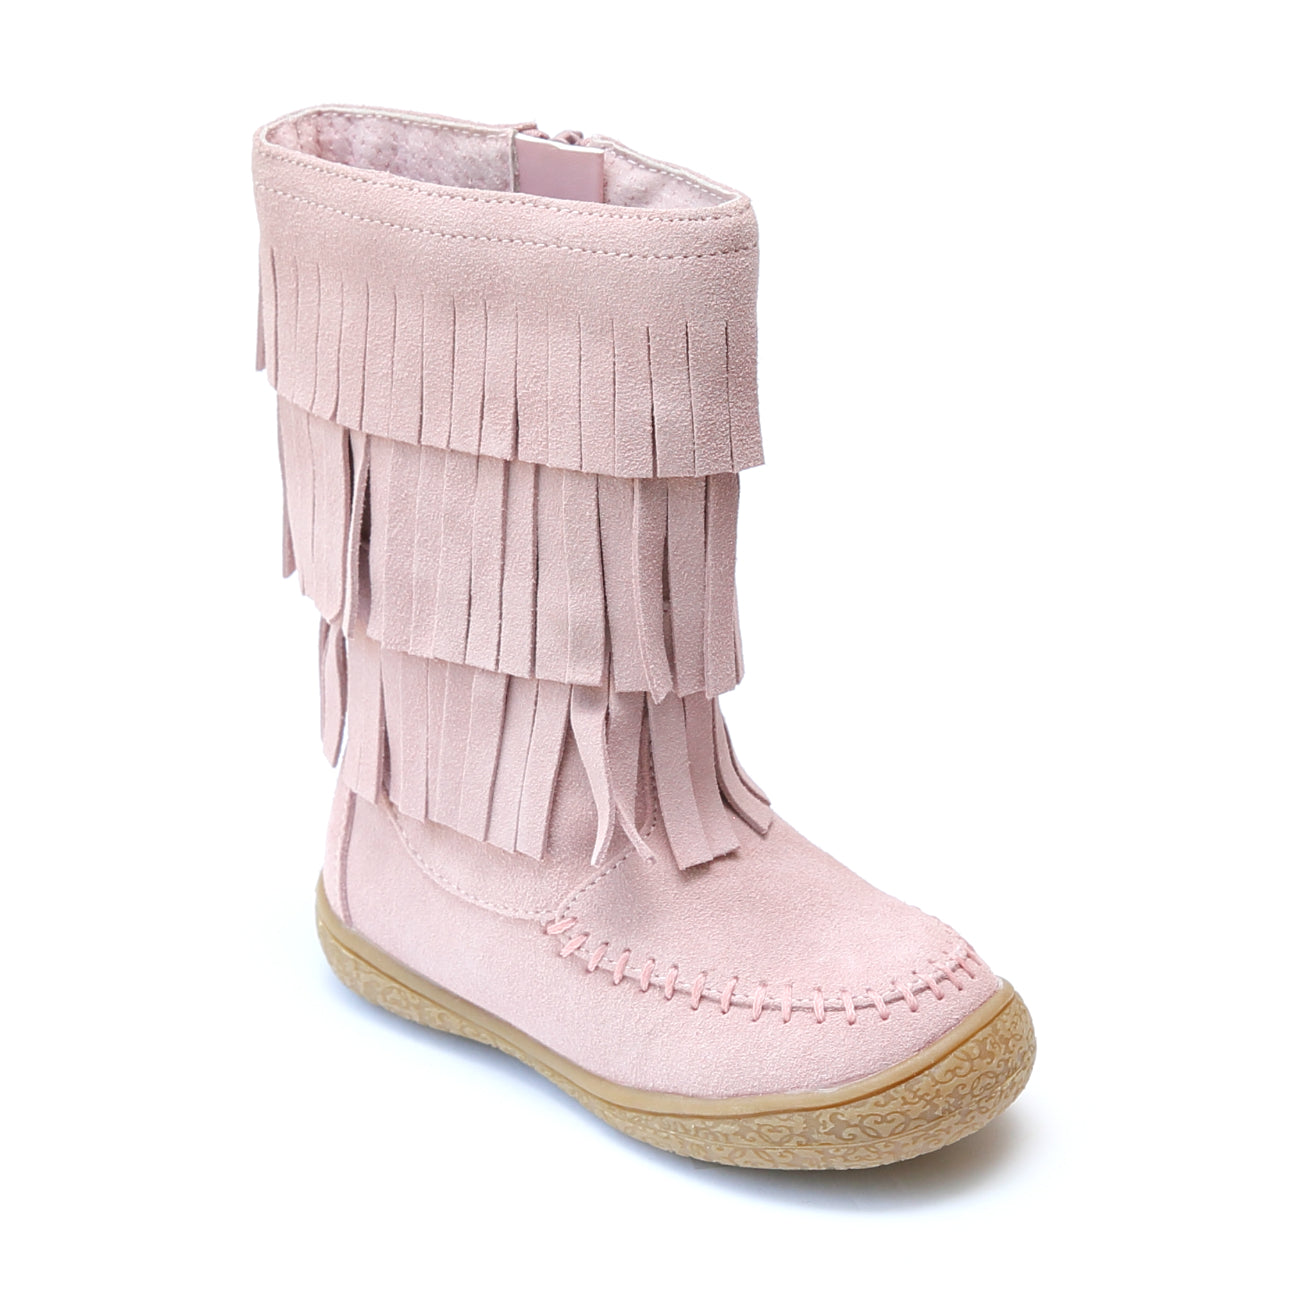 L'Amour Girls Suede Leather Fringe